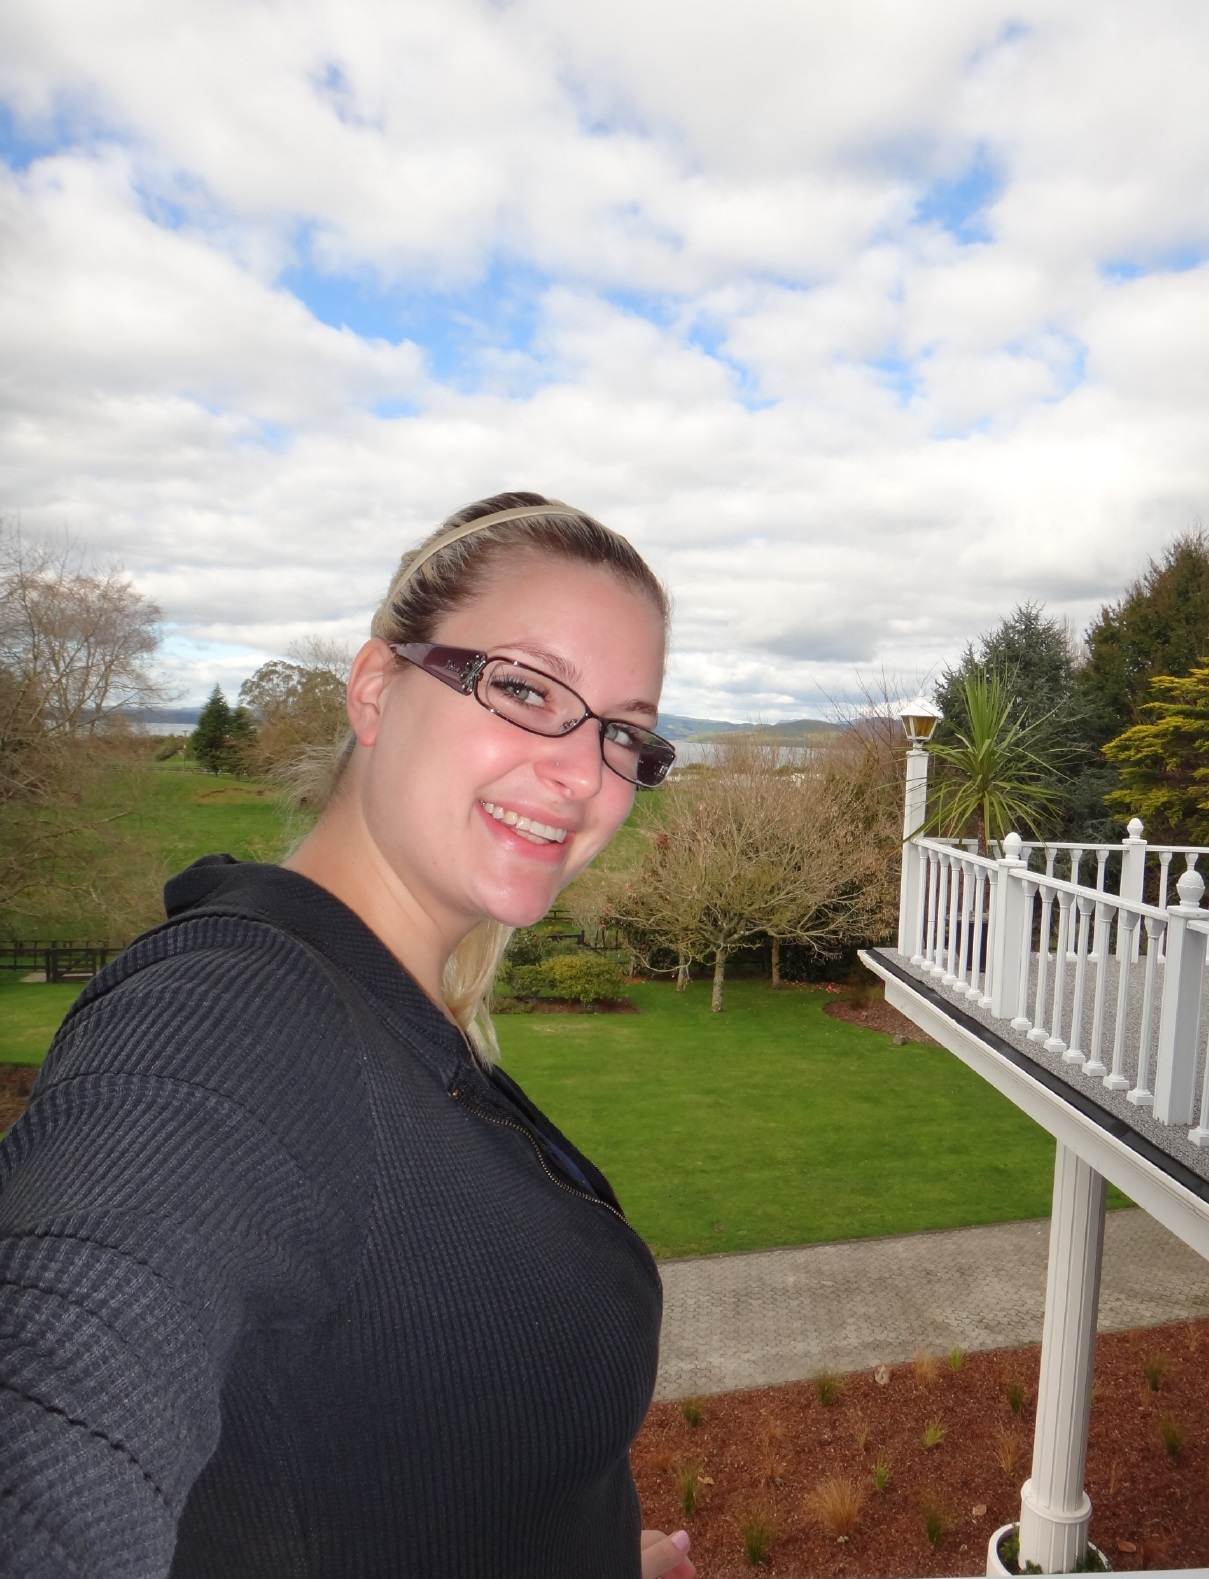 Looking In Dating Men Toronto For Ons